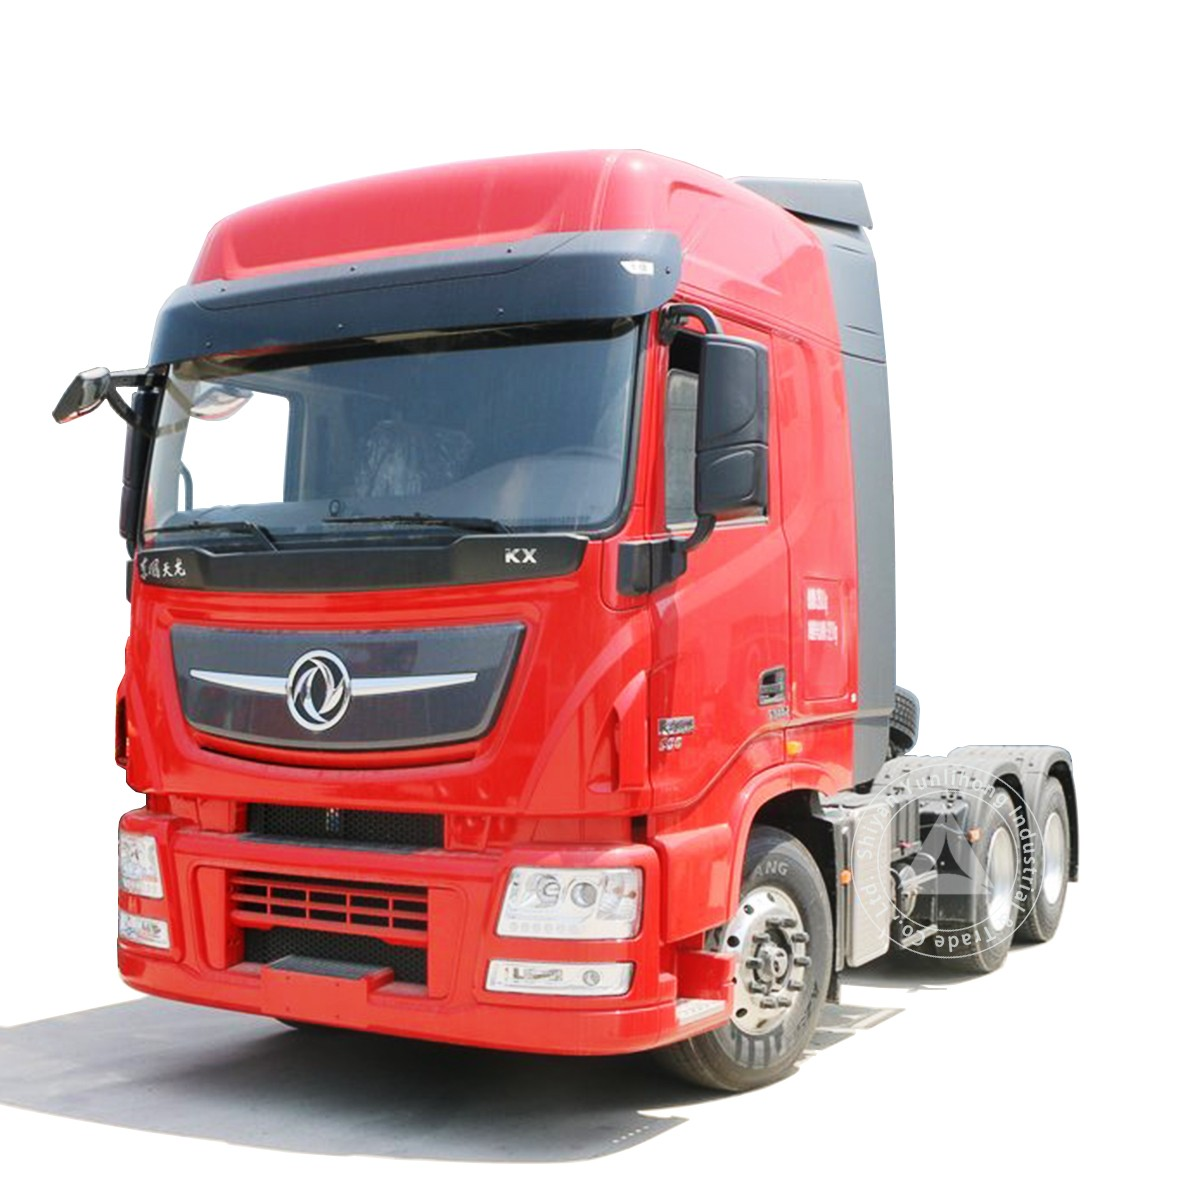 Dongfeng KX 560hp 6x4 Tractor Truck